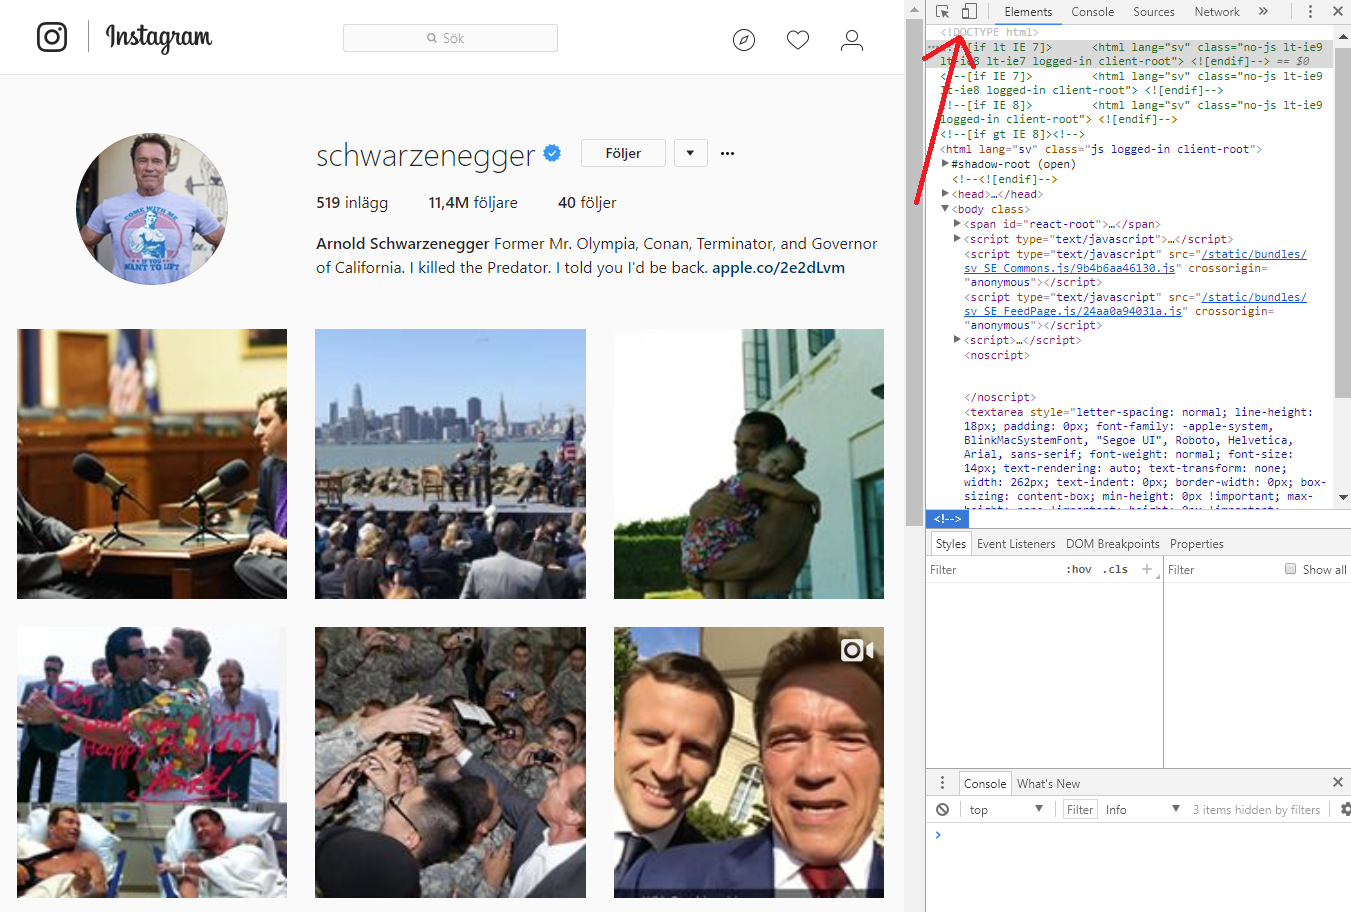 How to post on Instagram from a computer - Kristoffer Karlsson - Medium